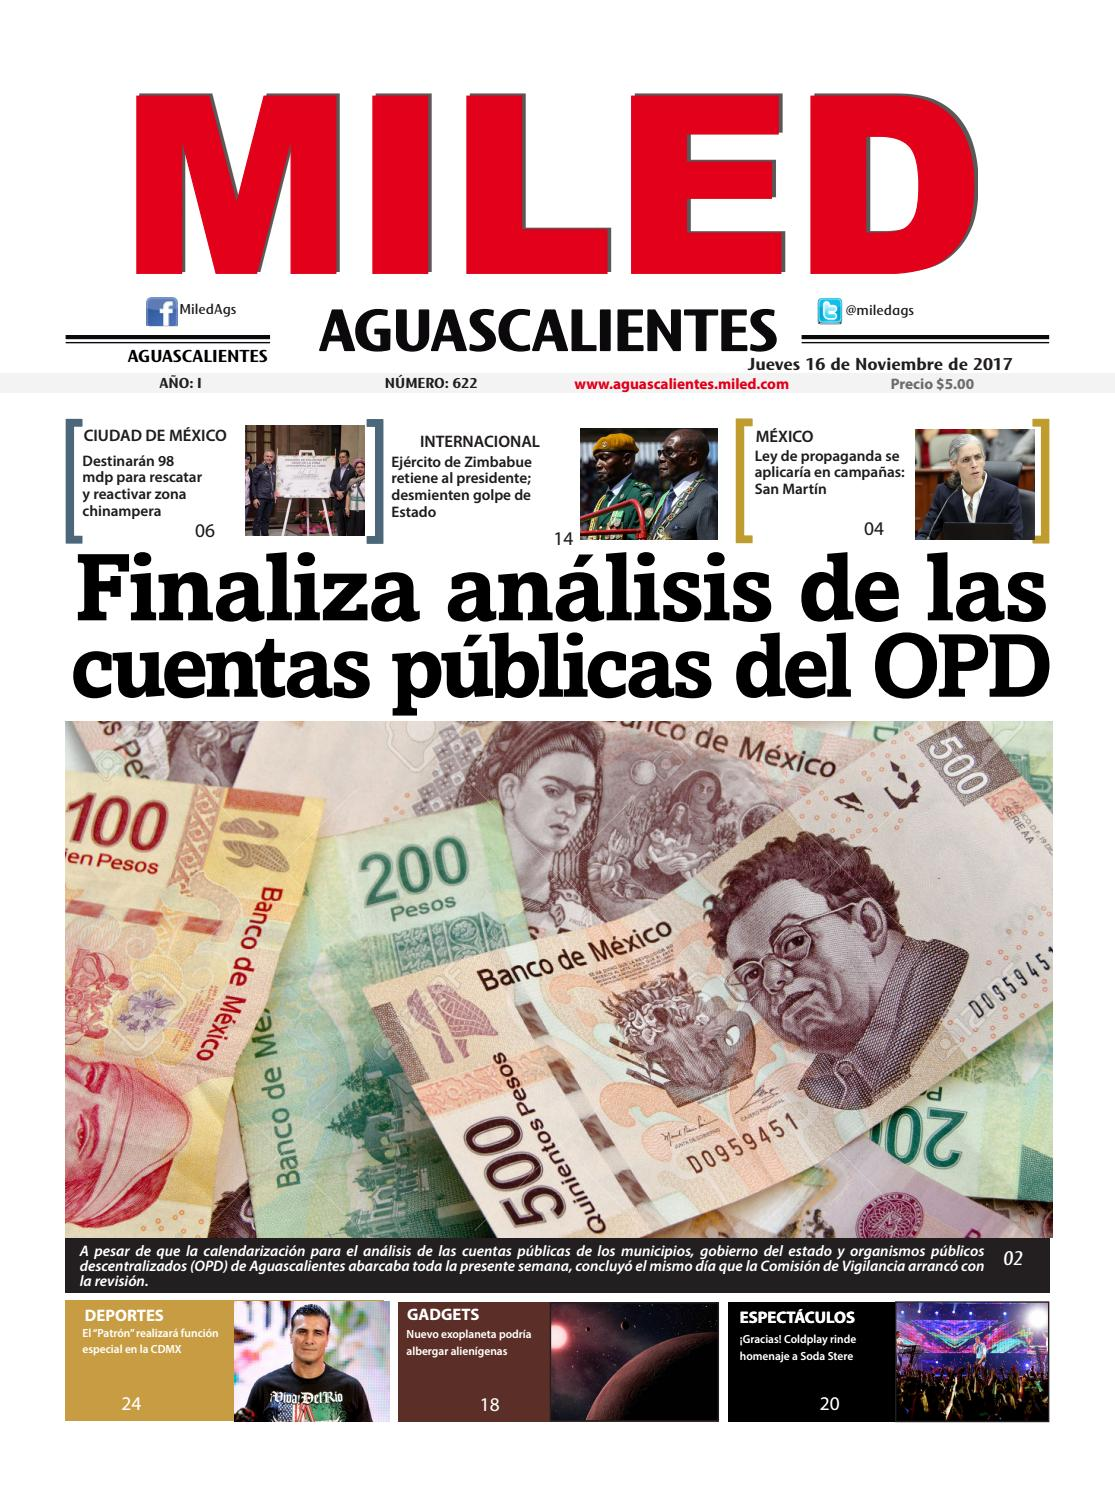 Miled Aguscalientes 16 11 17 by Miled Estados - issuu